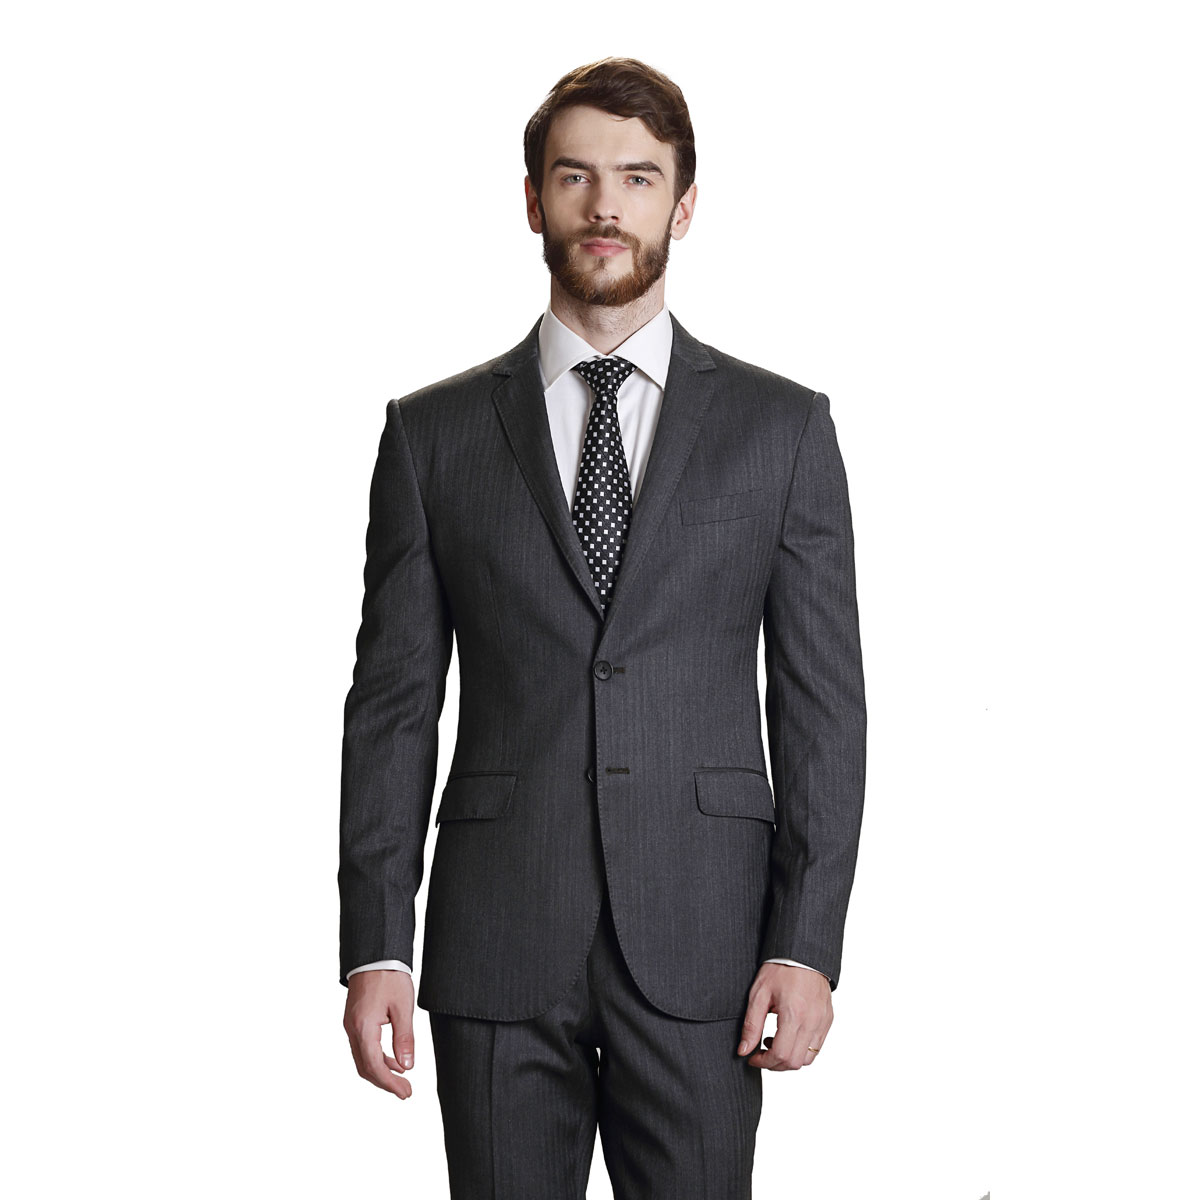 Million Dollar Grey Suit - Best Bespoke Suits. Premium Custom